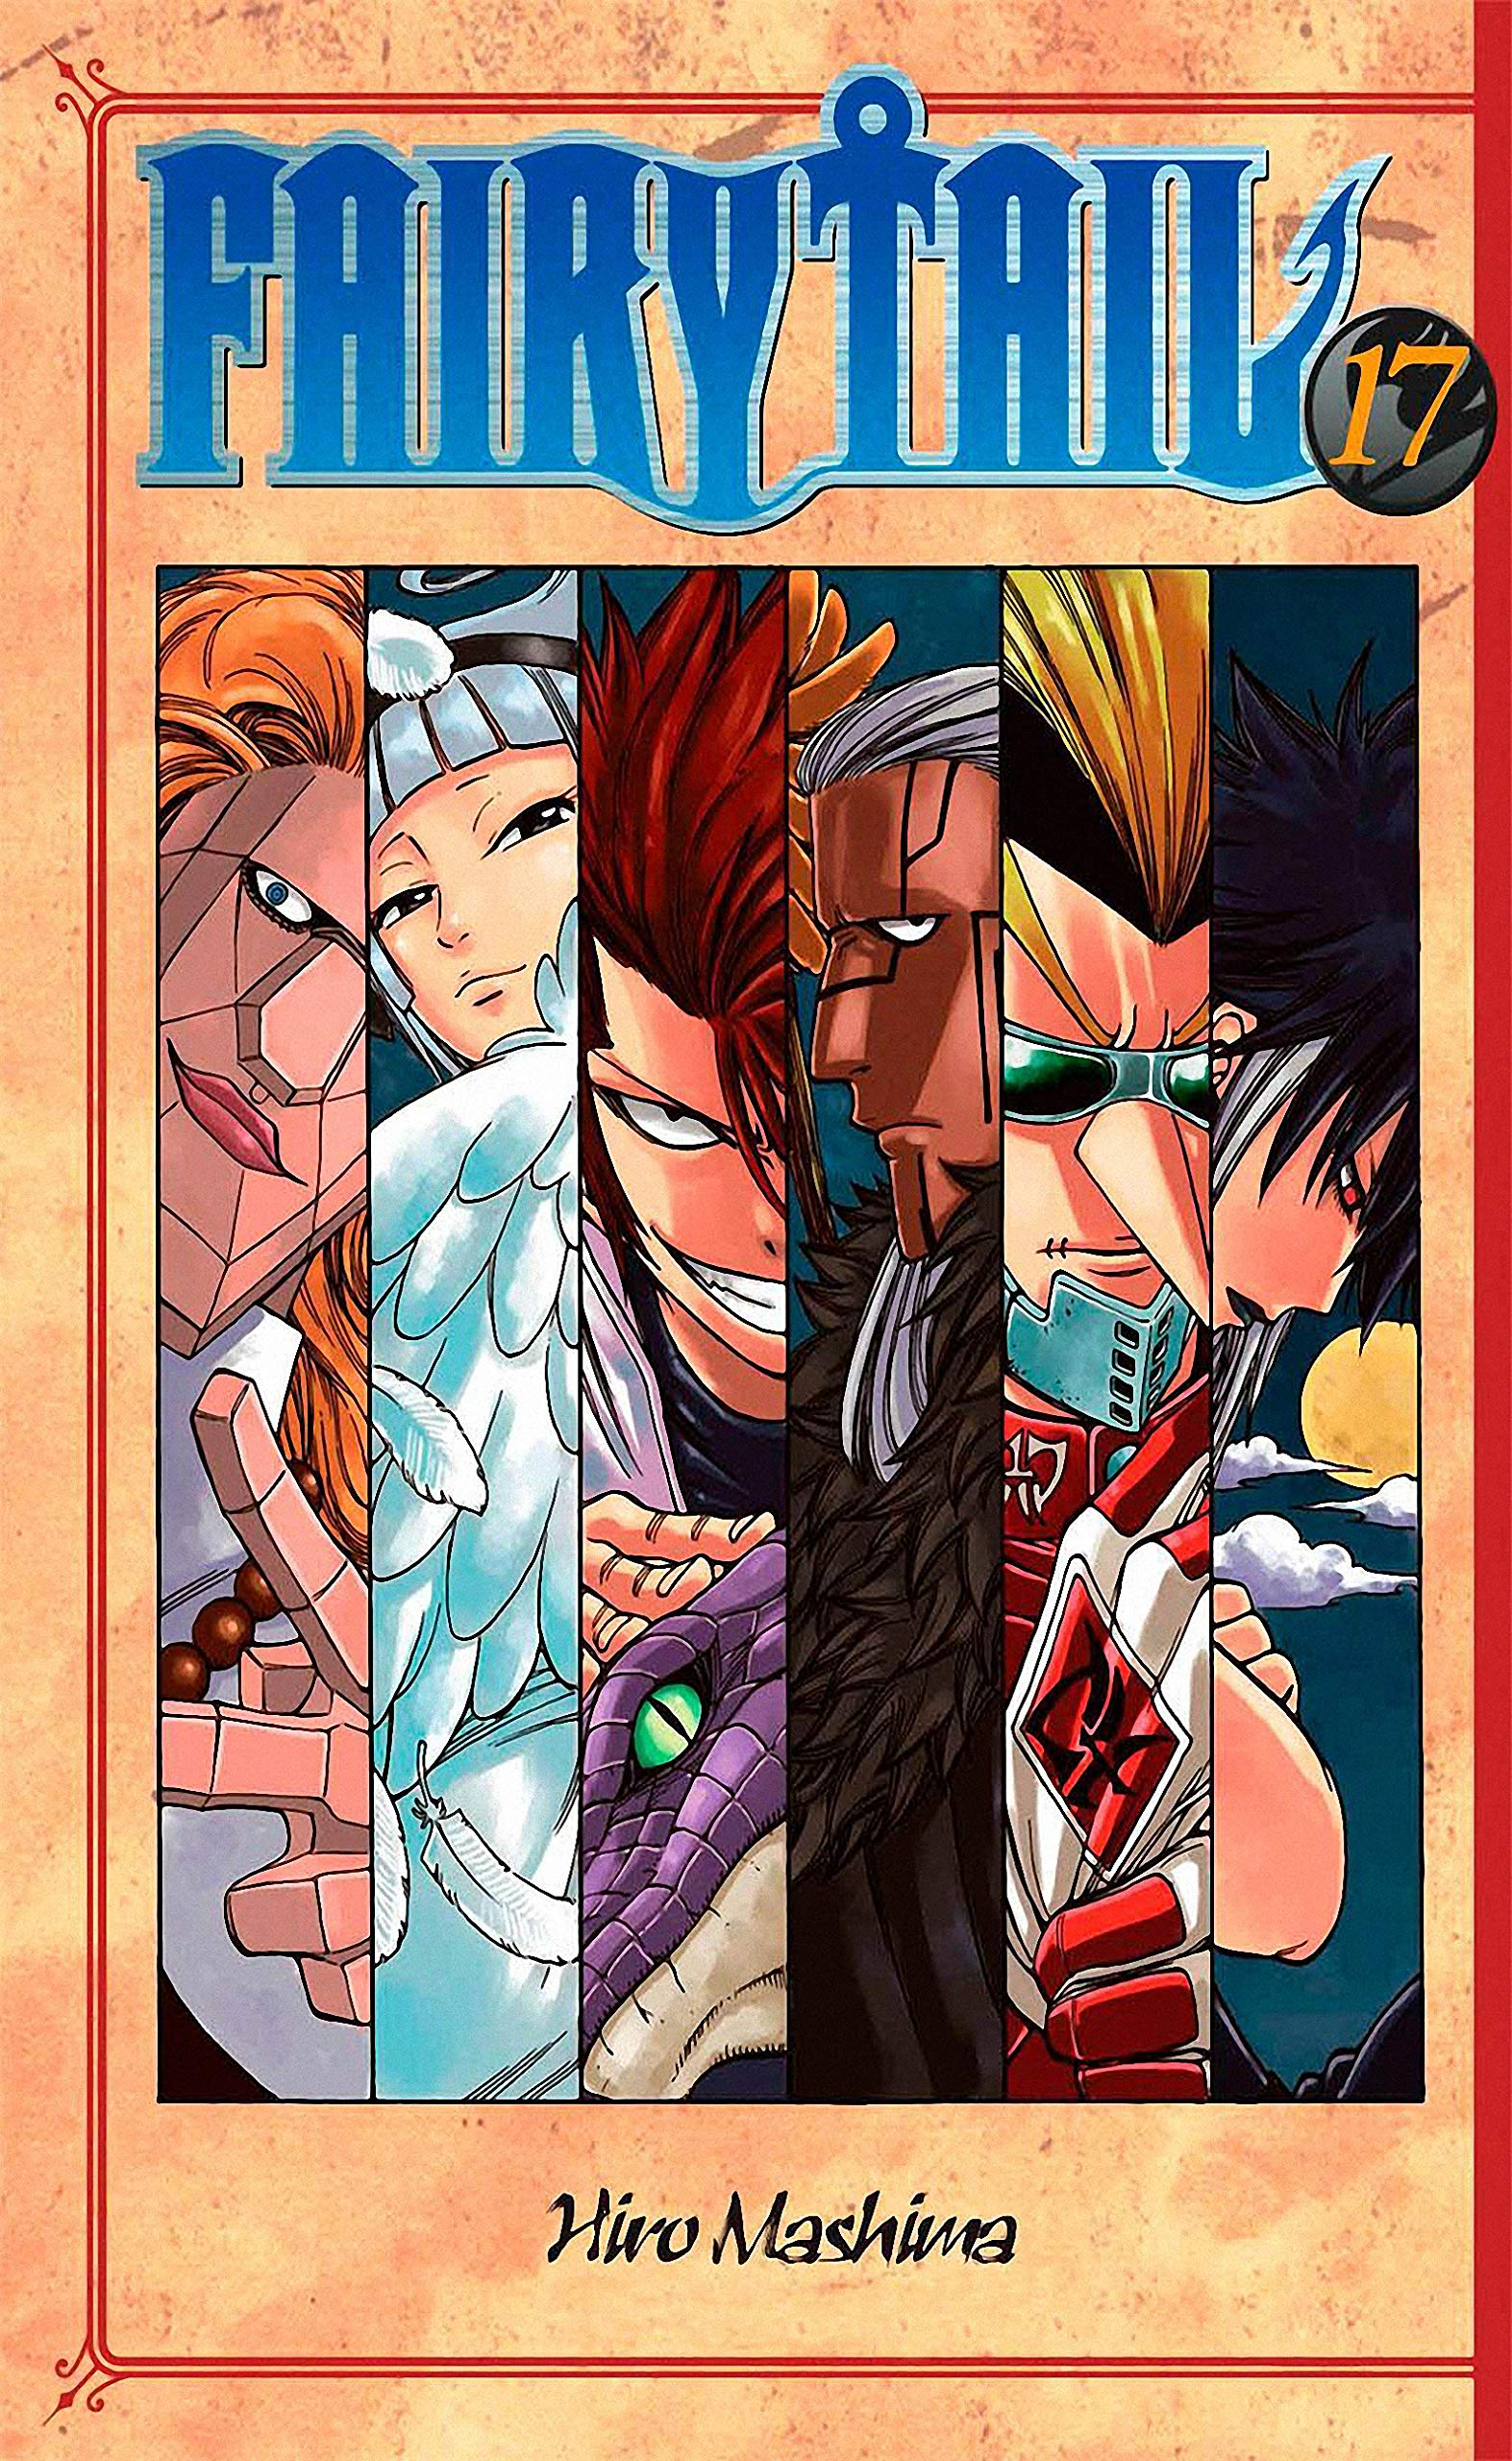 Fair: Tail - Book 17 Includes Vol 33 - 34 - Great Fairy Fantasy Action Graphic Novel Manga For Adults, Teenagers, Kids, Manga Lover